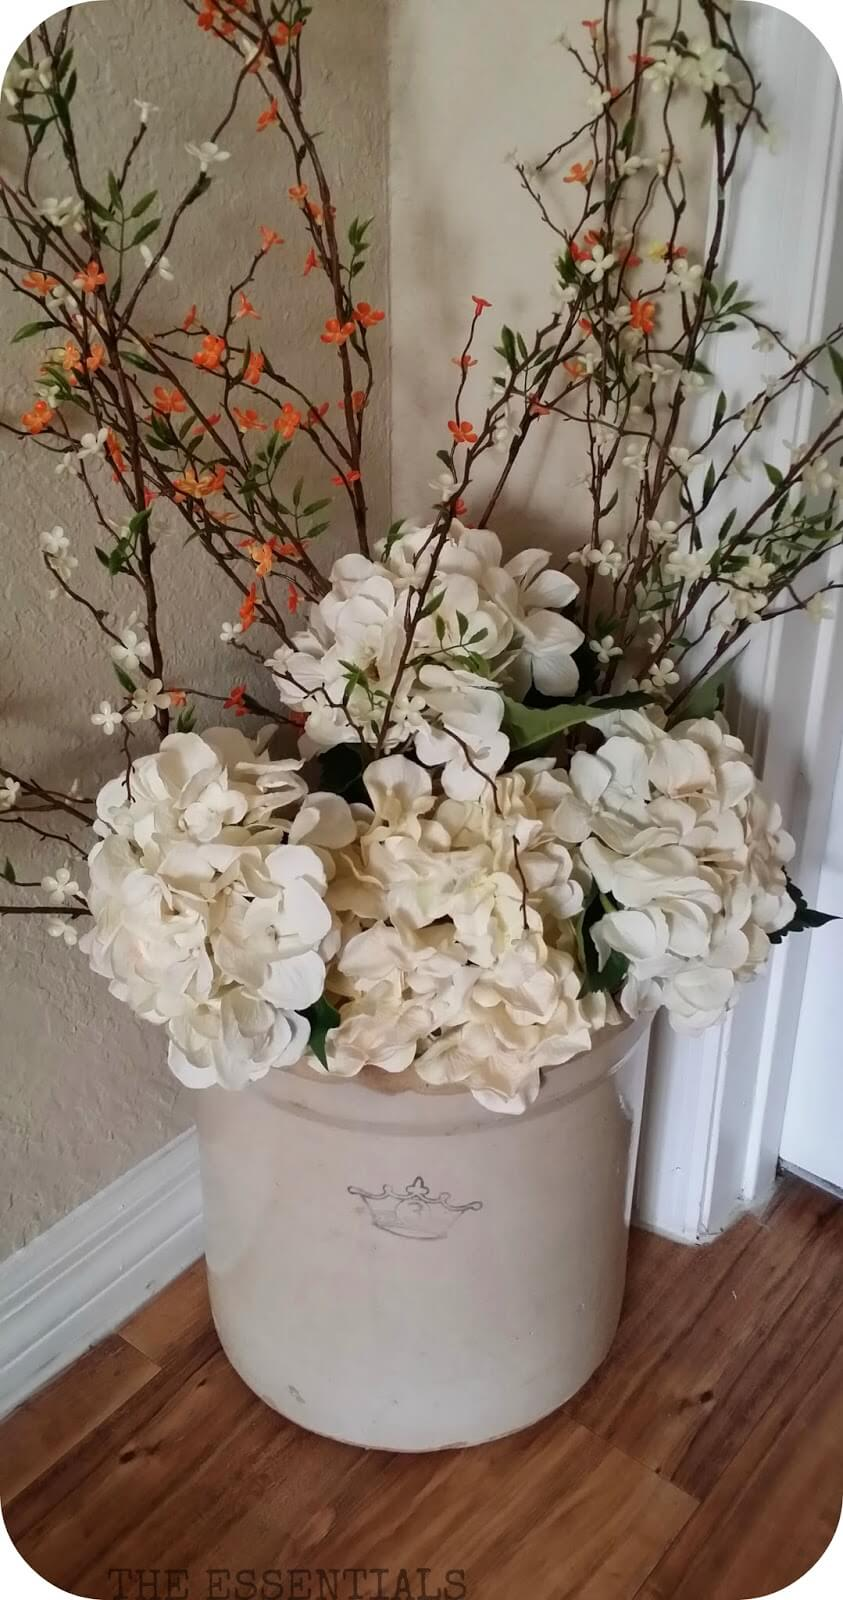 Arranging Flowers in Stoneware Crocks